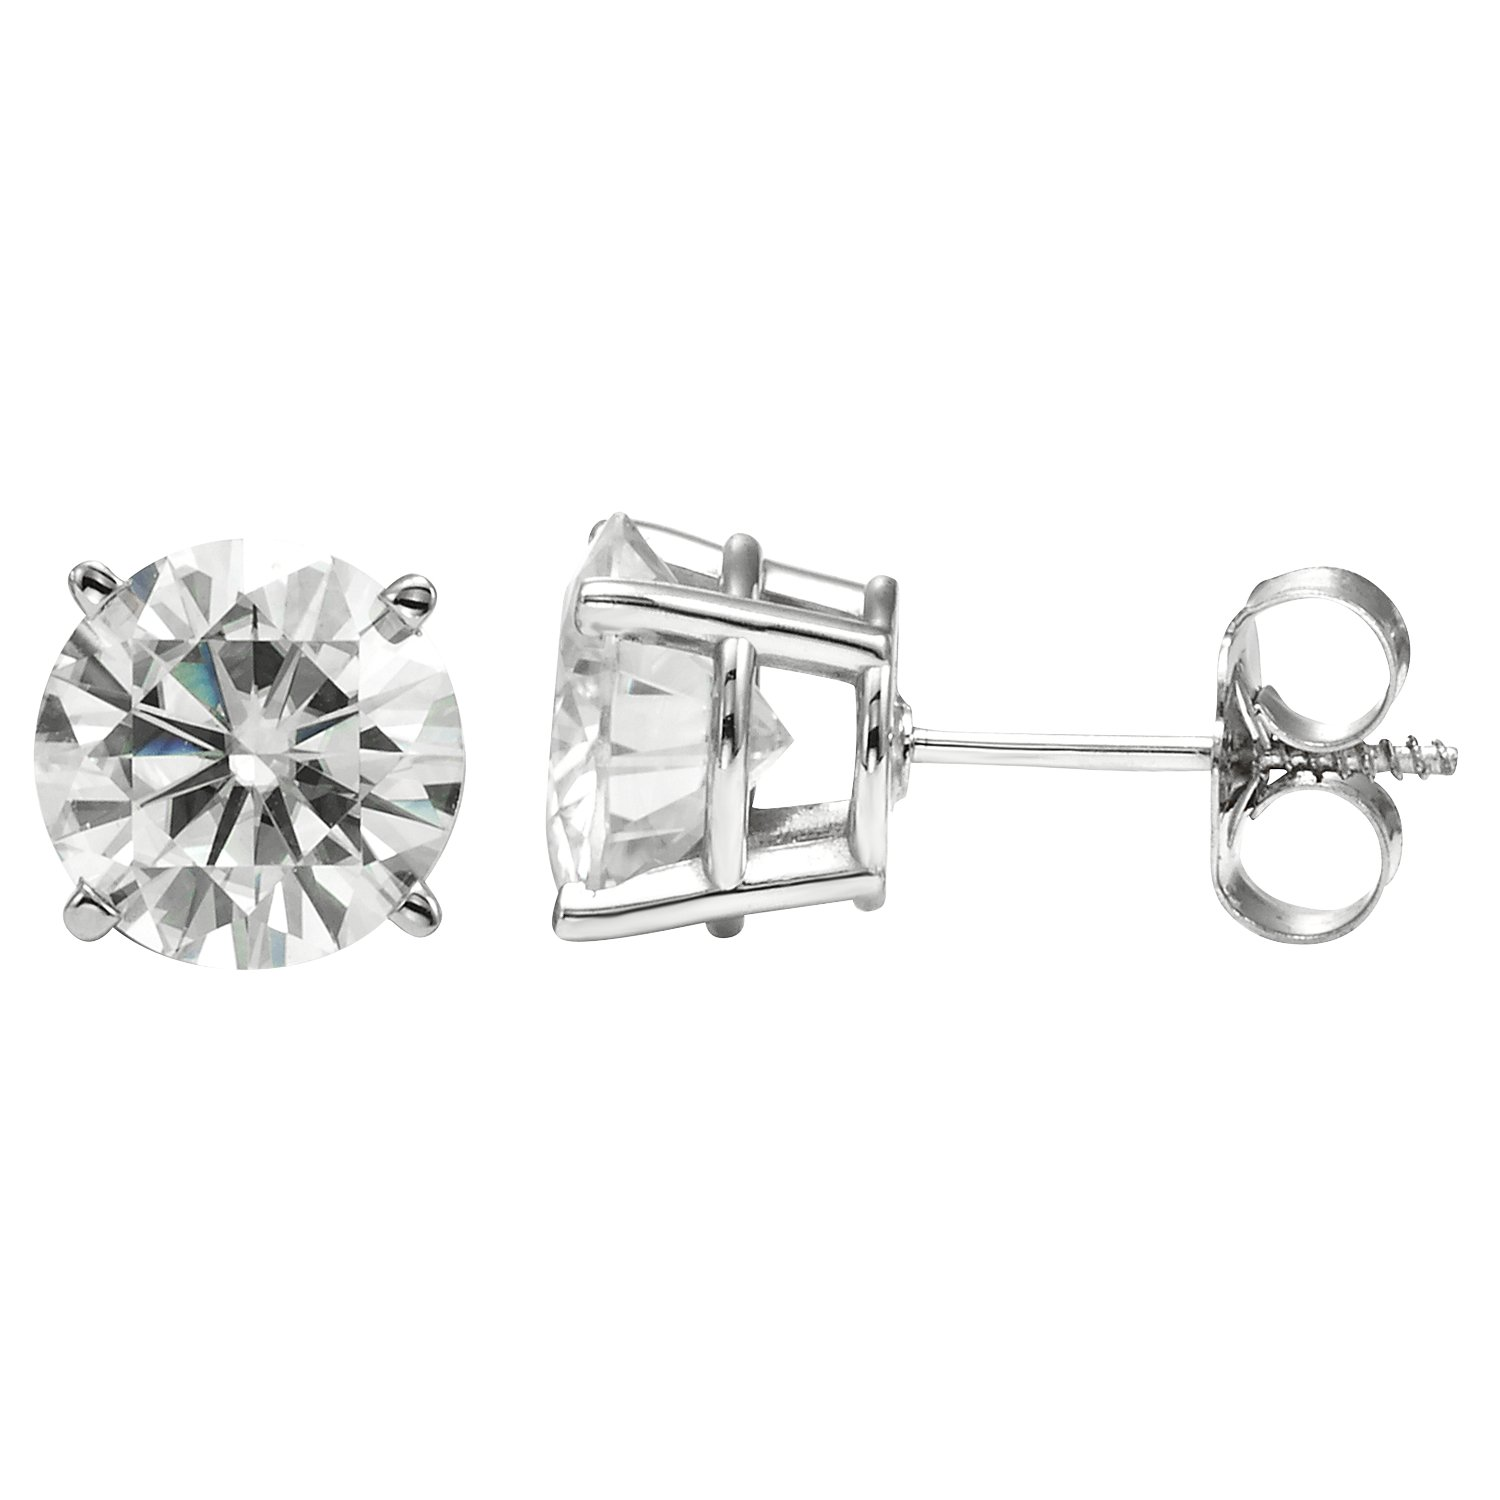 Forever Brilliant 5.0mm Round Moissanite Stud Earrings, 1.00cttw DEW By Charles & Colvard by Charles & Colvard (Image #1)